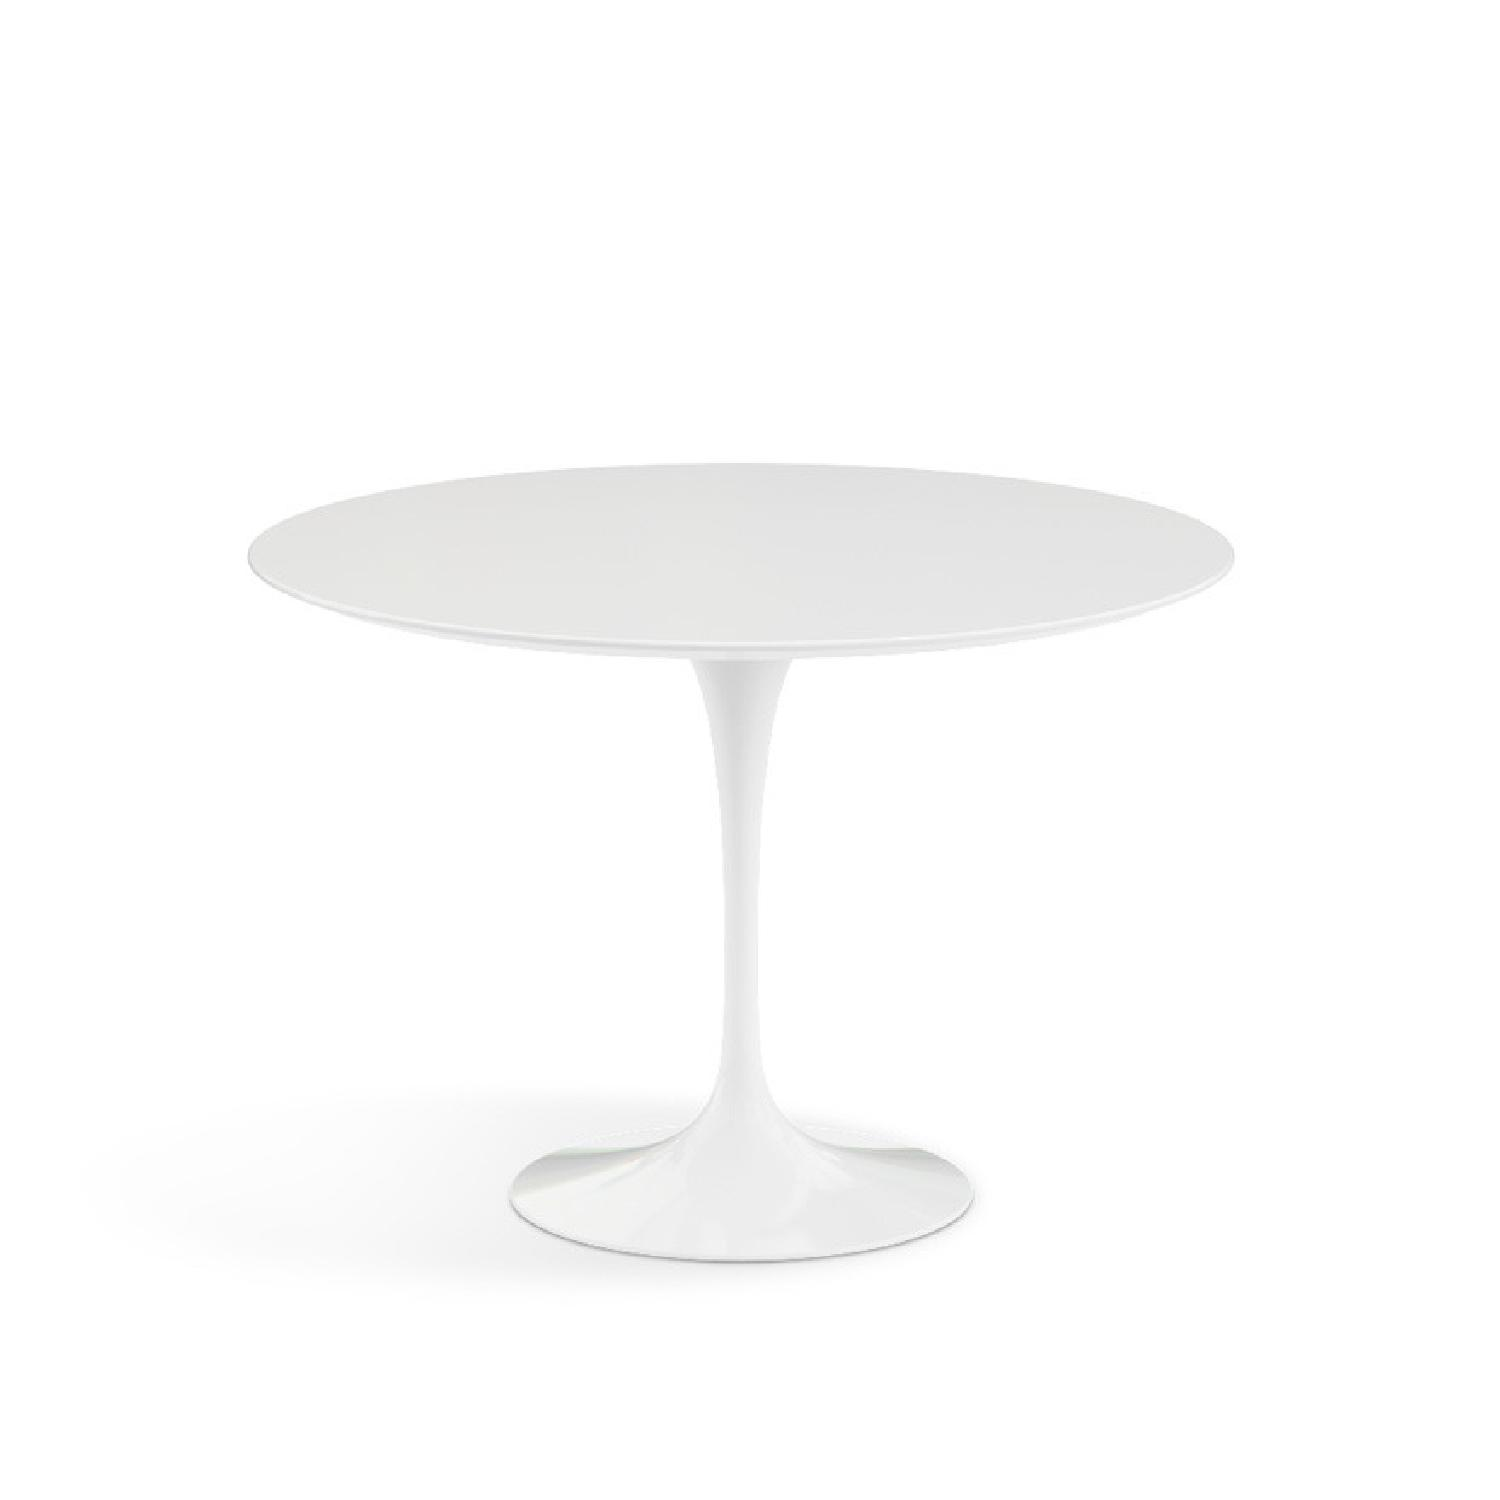 Knoll Saarinen Dining Table with Carrara Marble Top - image-0